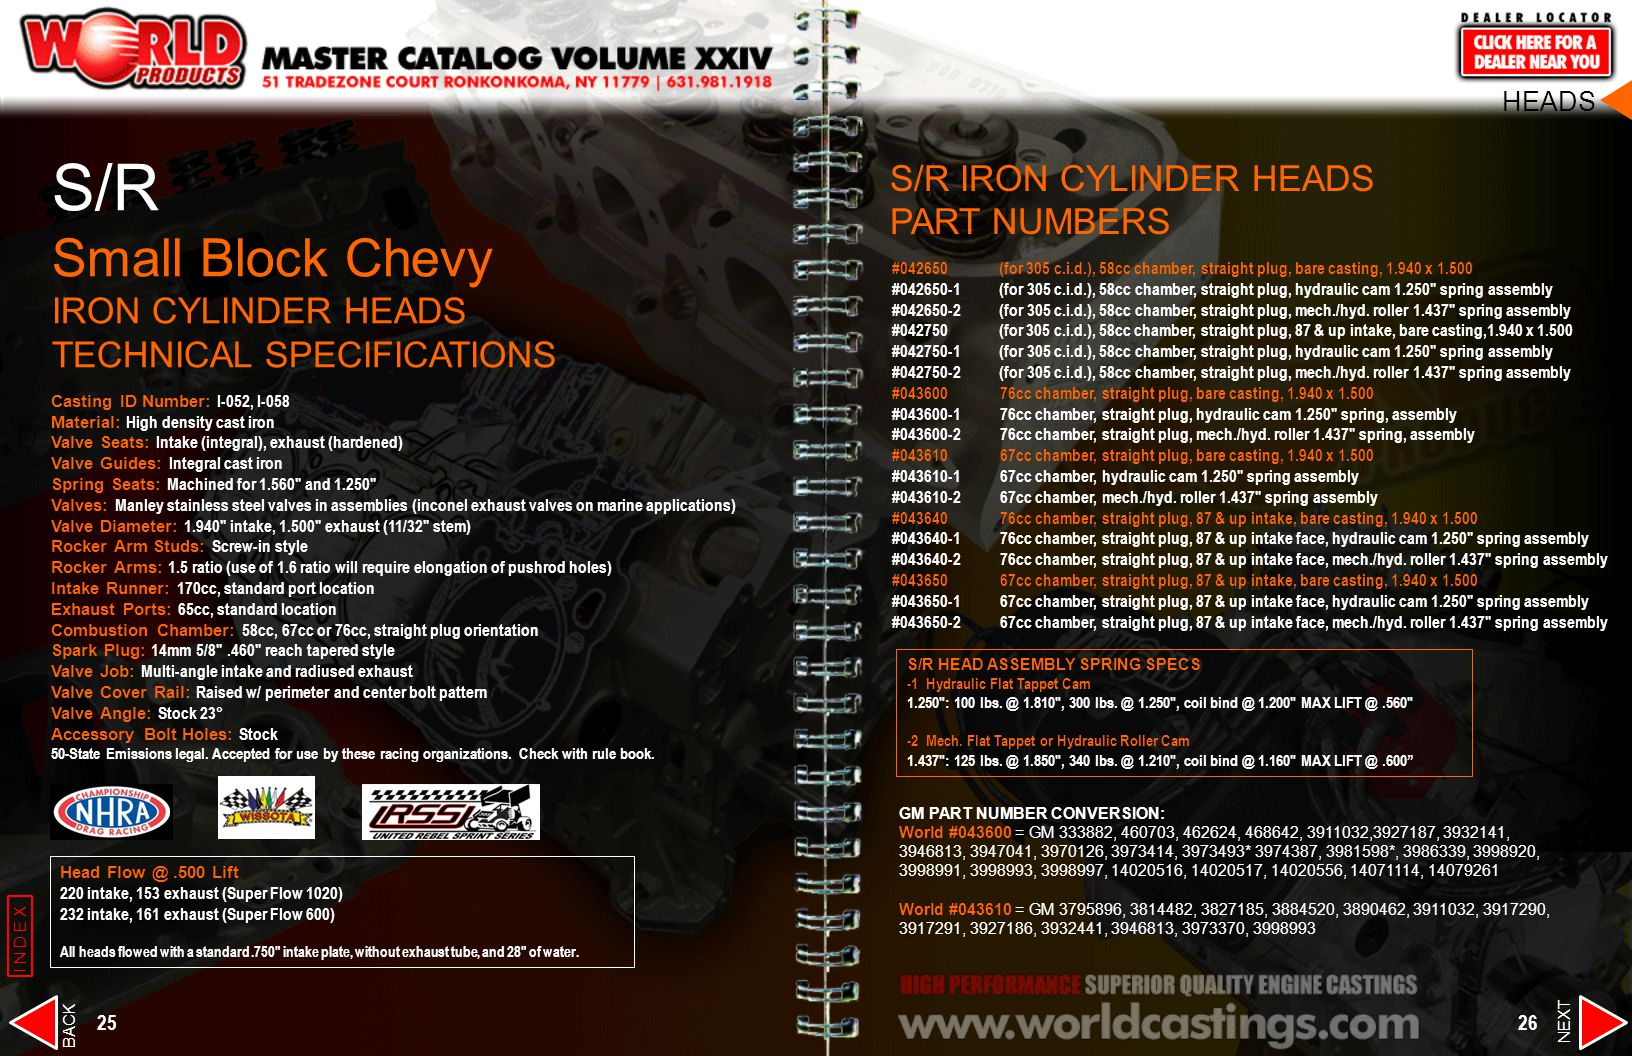 S/R Small Block Chevy IRON CYLINDER HEADS TECHNICAL SPECIFICATIONS